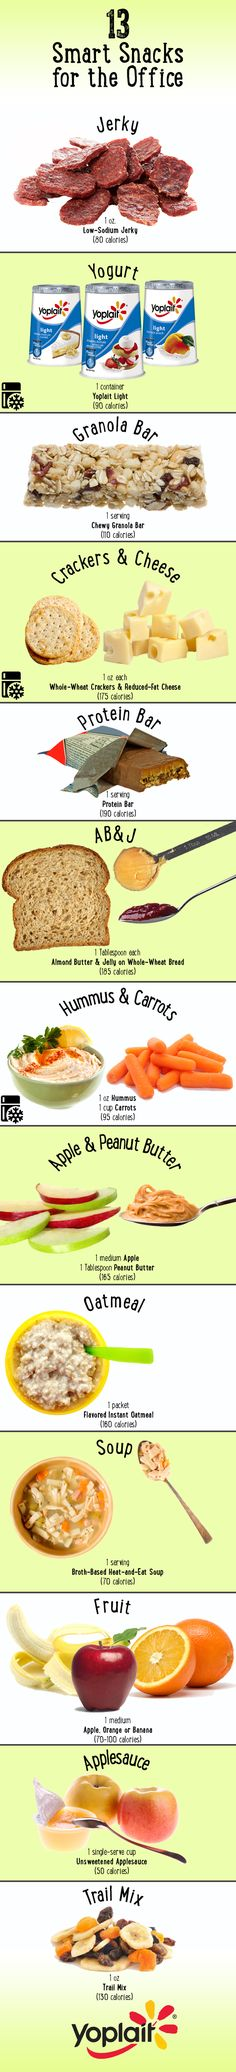 13 smart #snacks to keep at your desk. Can't wait to try some of these! | via @SparkPeople #healthy #food #nutrition